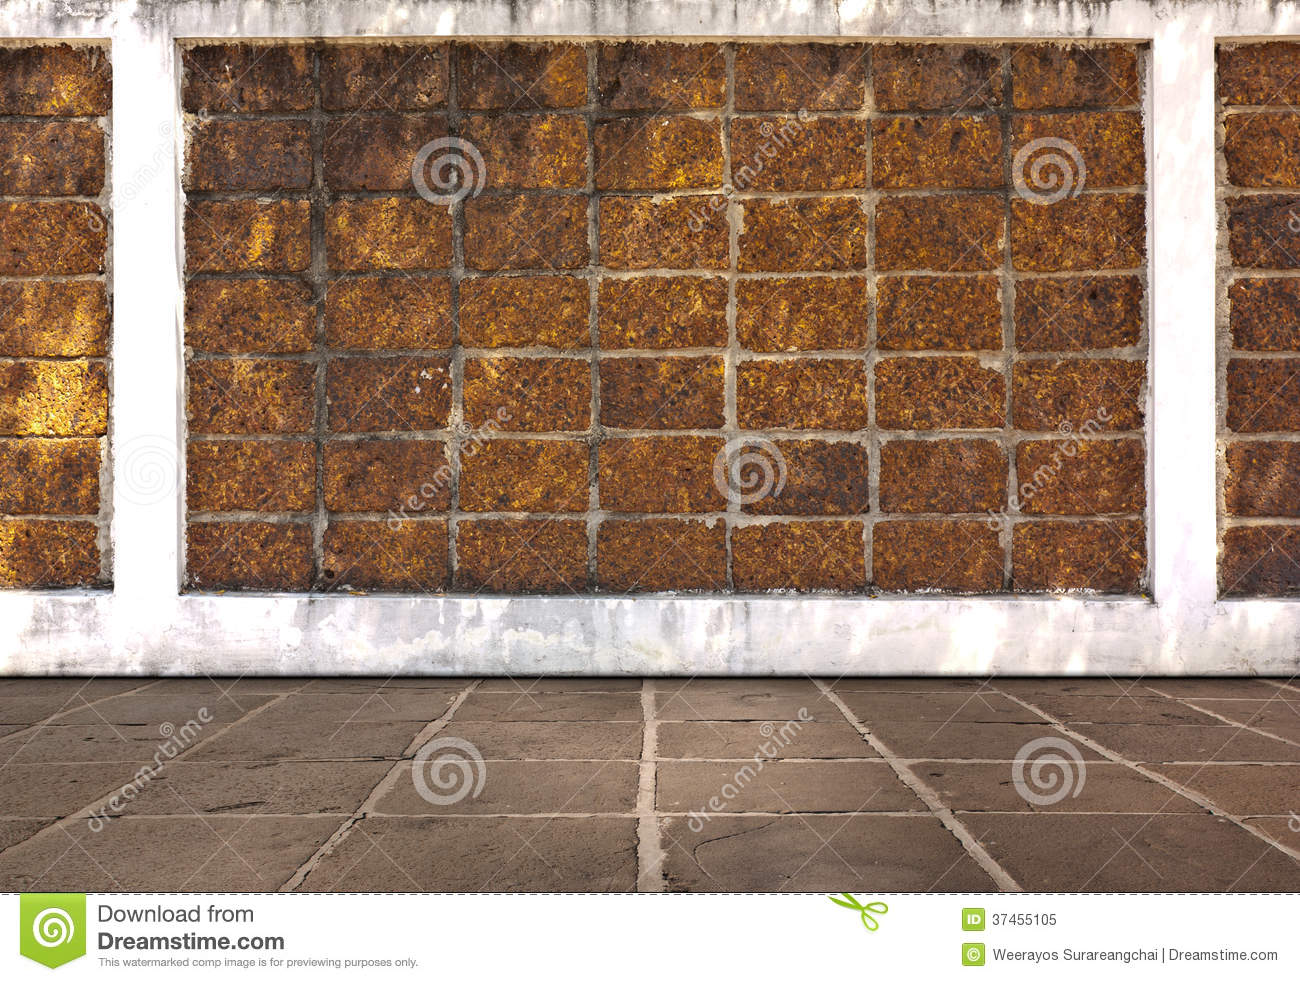 Laterite stone brick wall stock images image 35510874 - Laterite Brick Wall And Cement Flooring Royalty Free Stock Photo